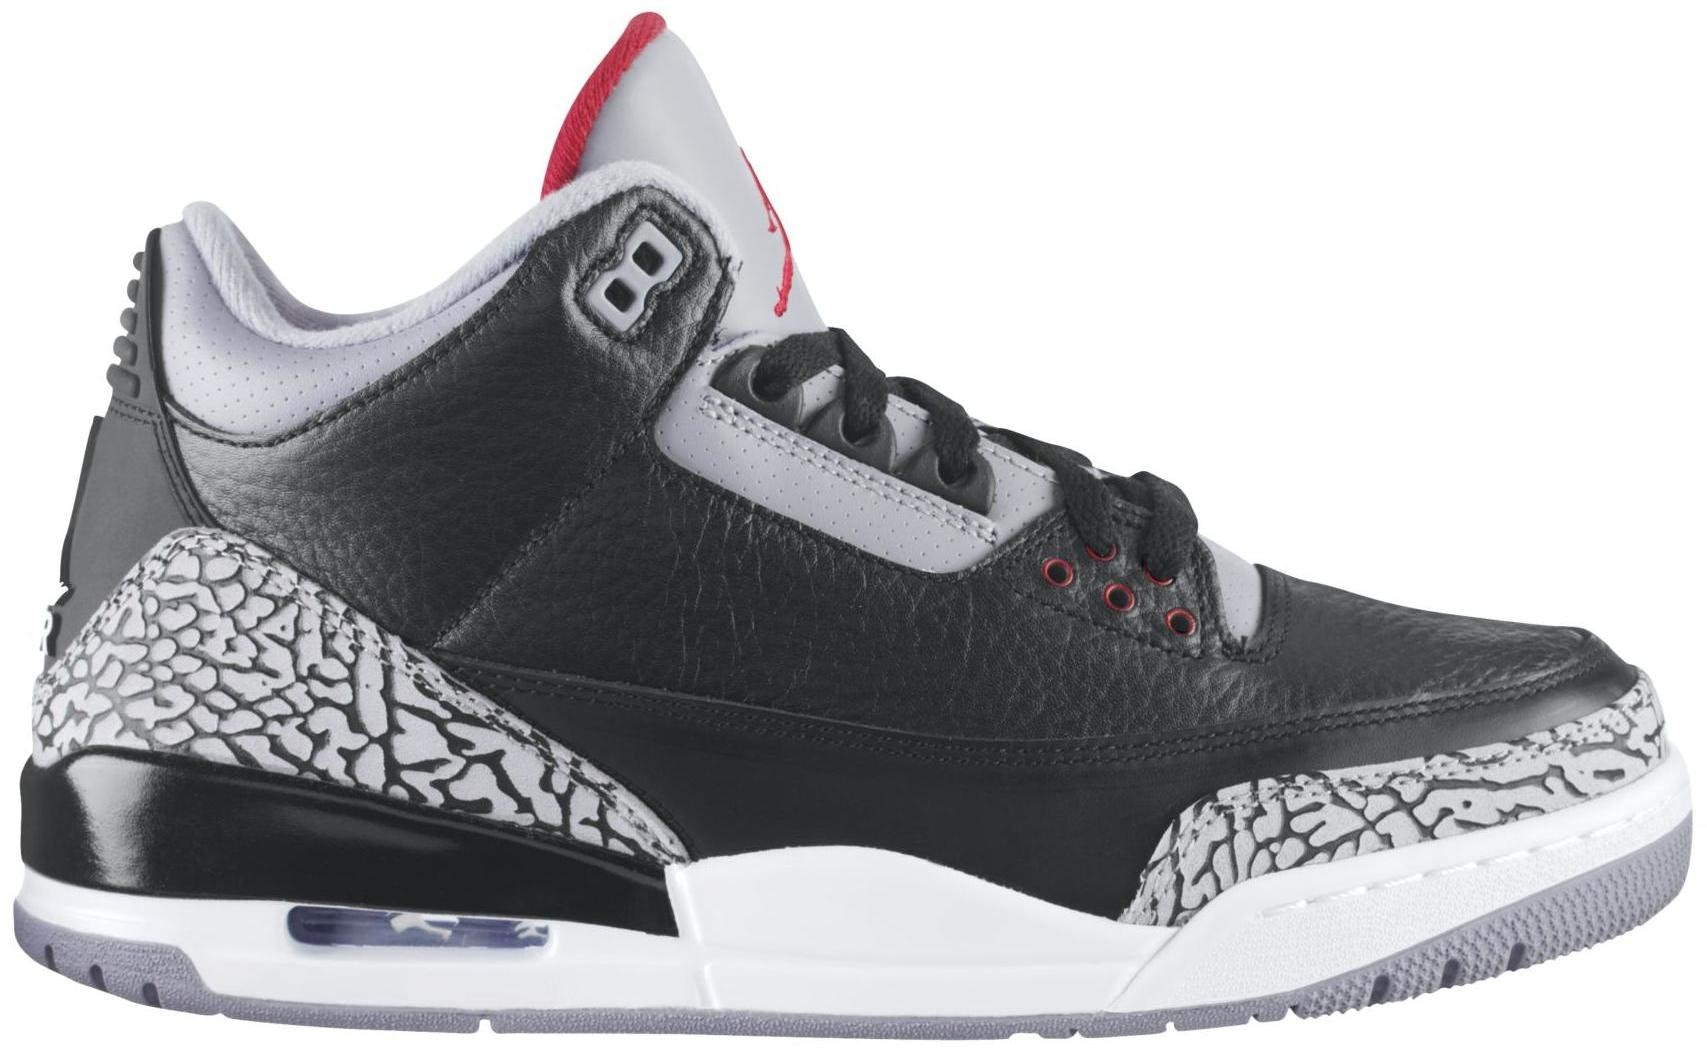 a35057b7d1c jordan flight 23 black red cement Air Jordan 3 Retro ...